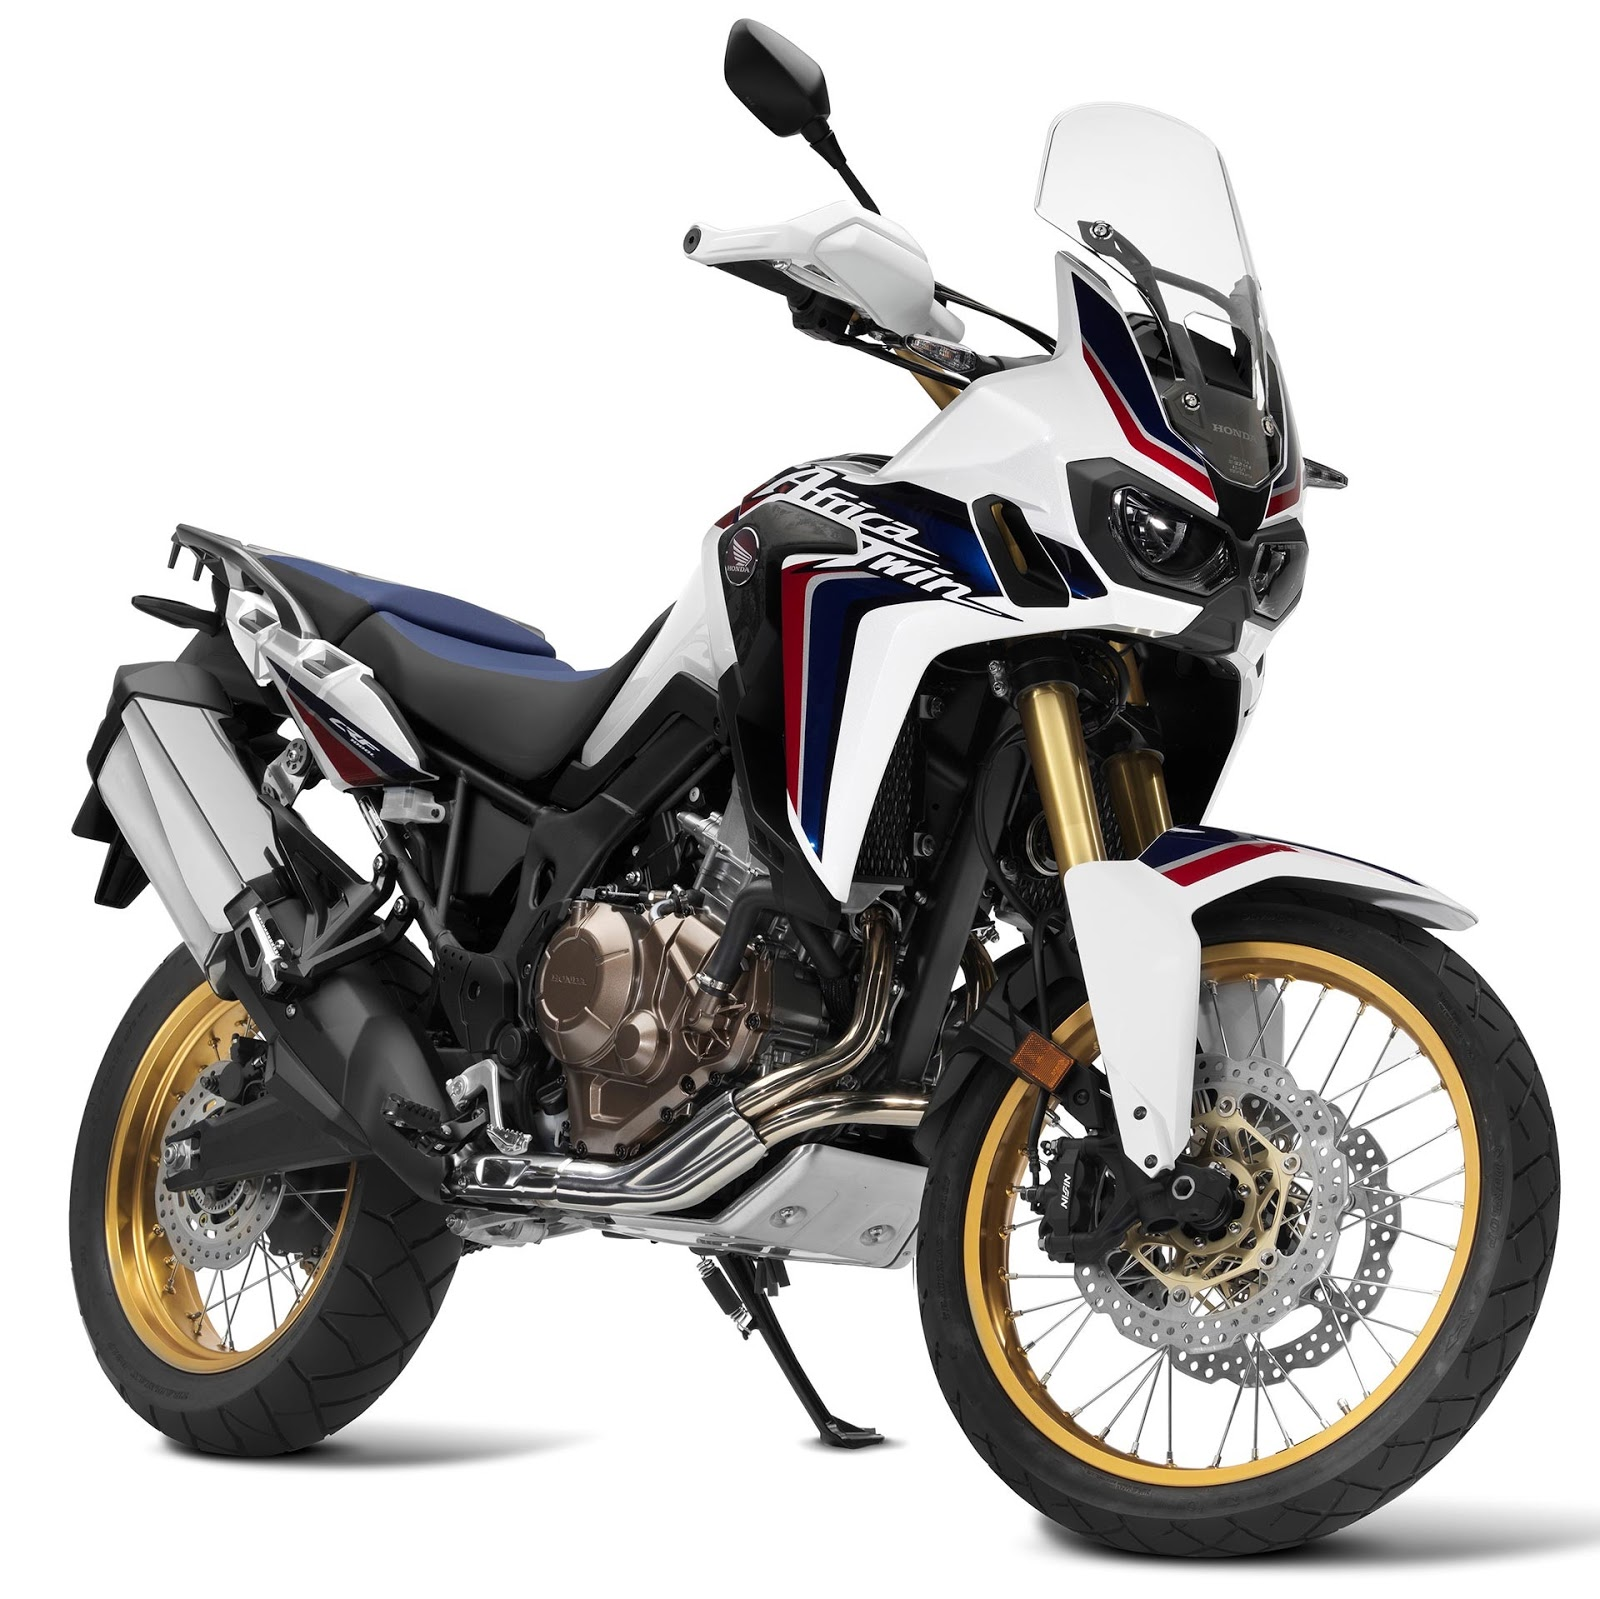 riding the usa honda crf1000l africa twin. Black Bedroom Furniture Sets. Home Design Ideas